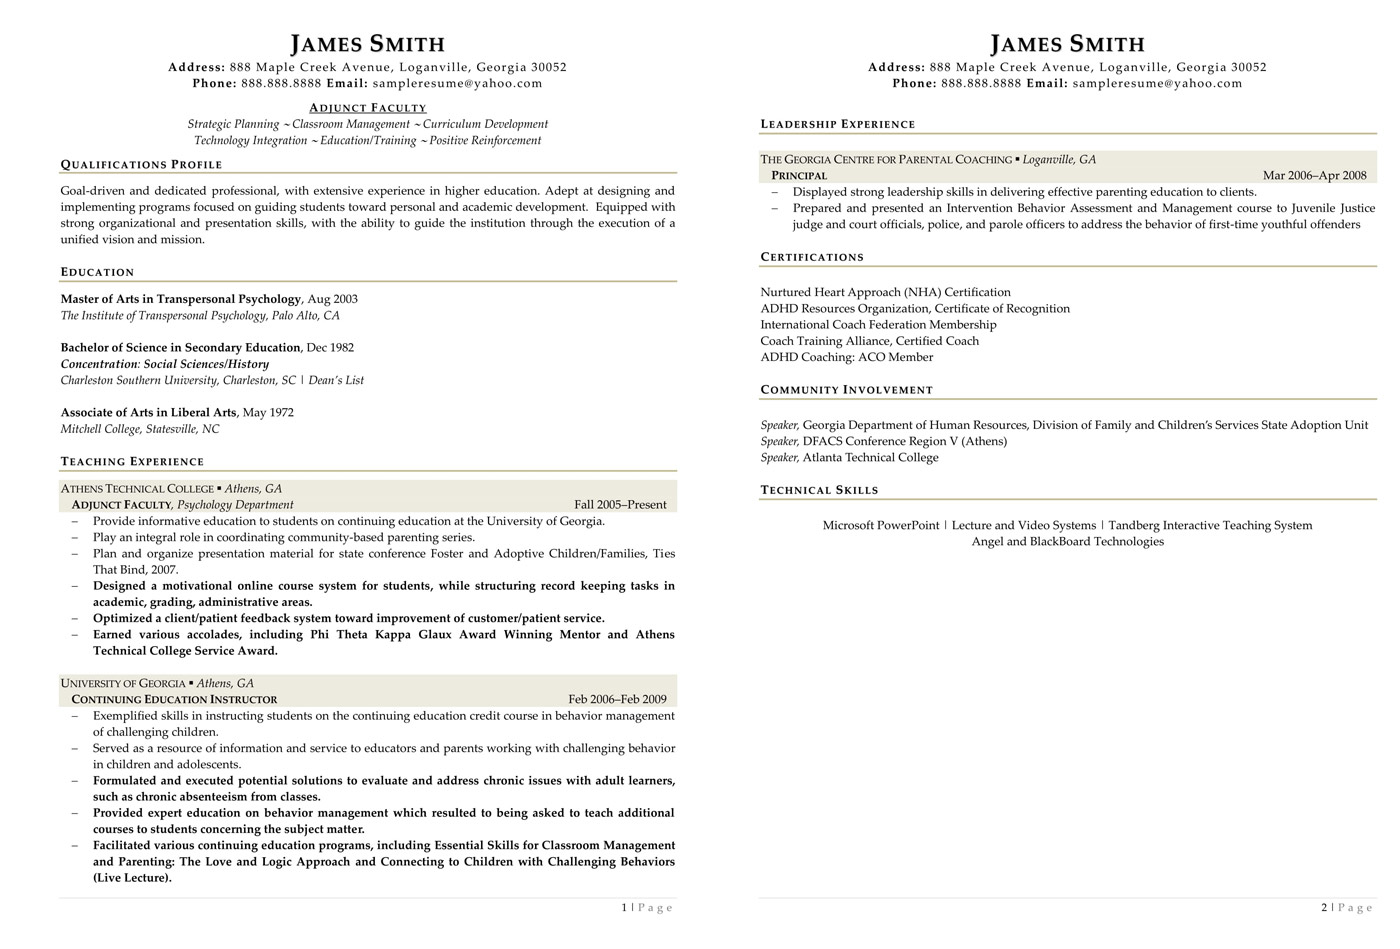 assistant professor resume - Research Assistant Sample Resume